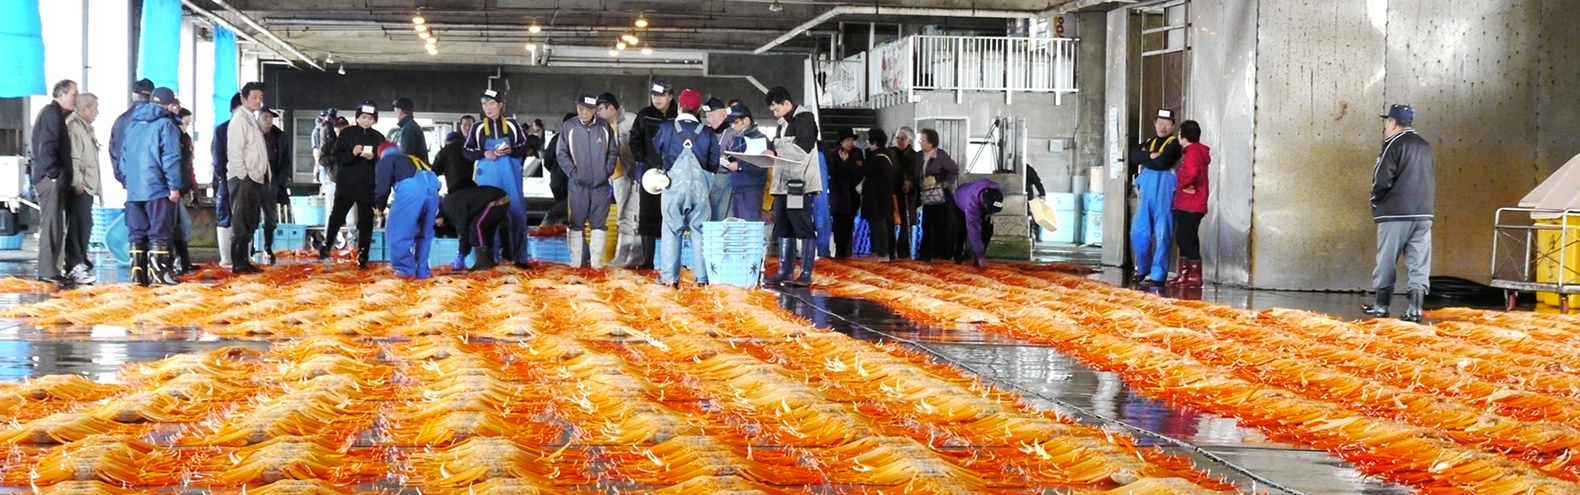 Midday auctions at Shinminato fishermen's wharf/Fresh crab